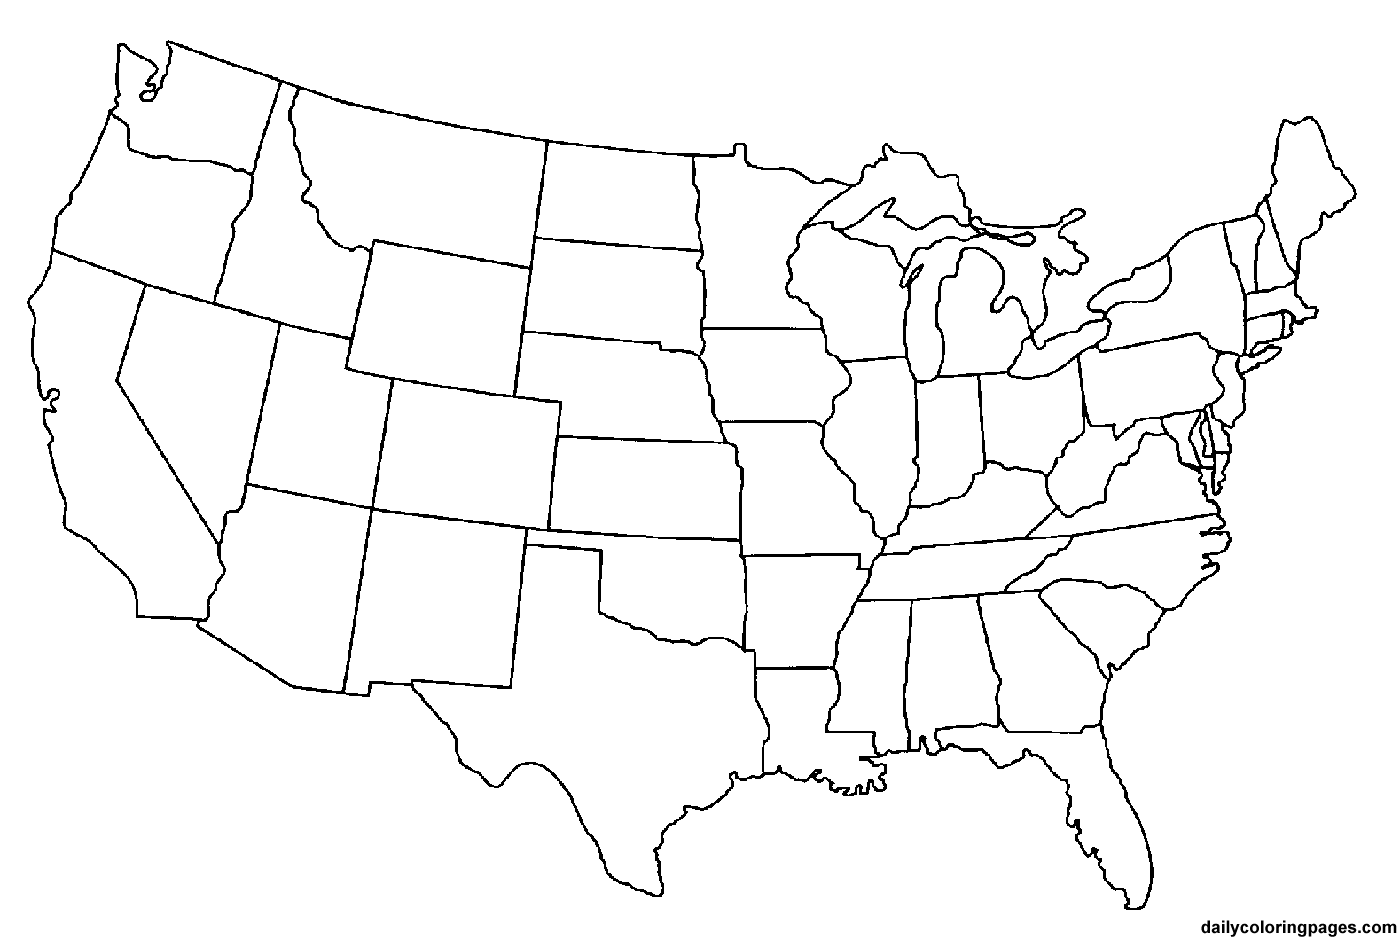 state map coloring pages - Map Coloring Pages